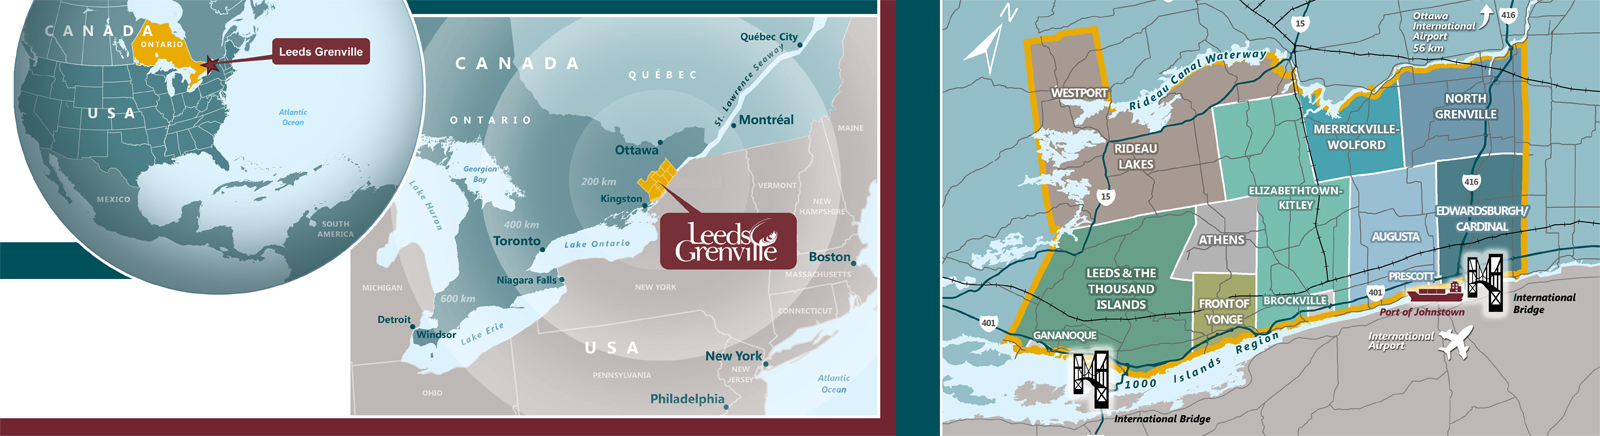 Maps showing Location of Leeds Grenville